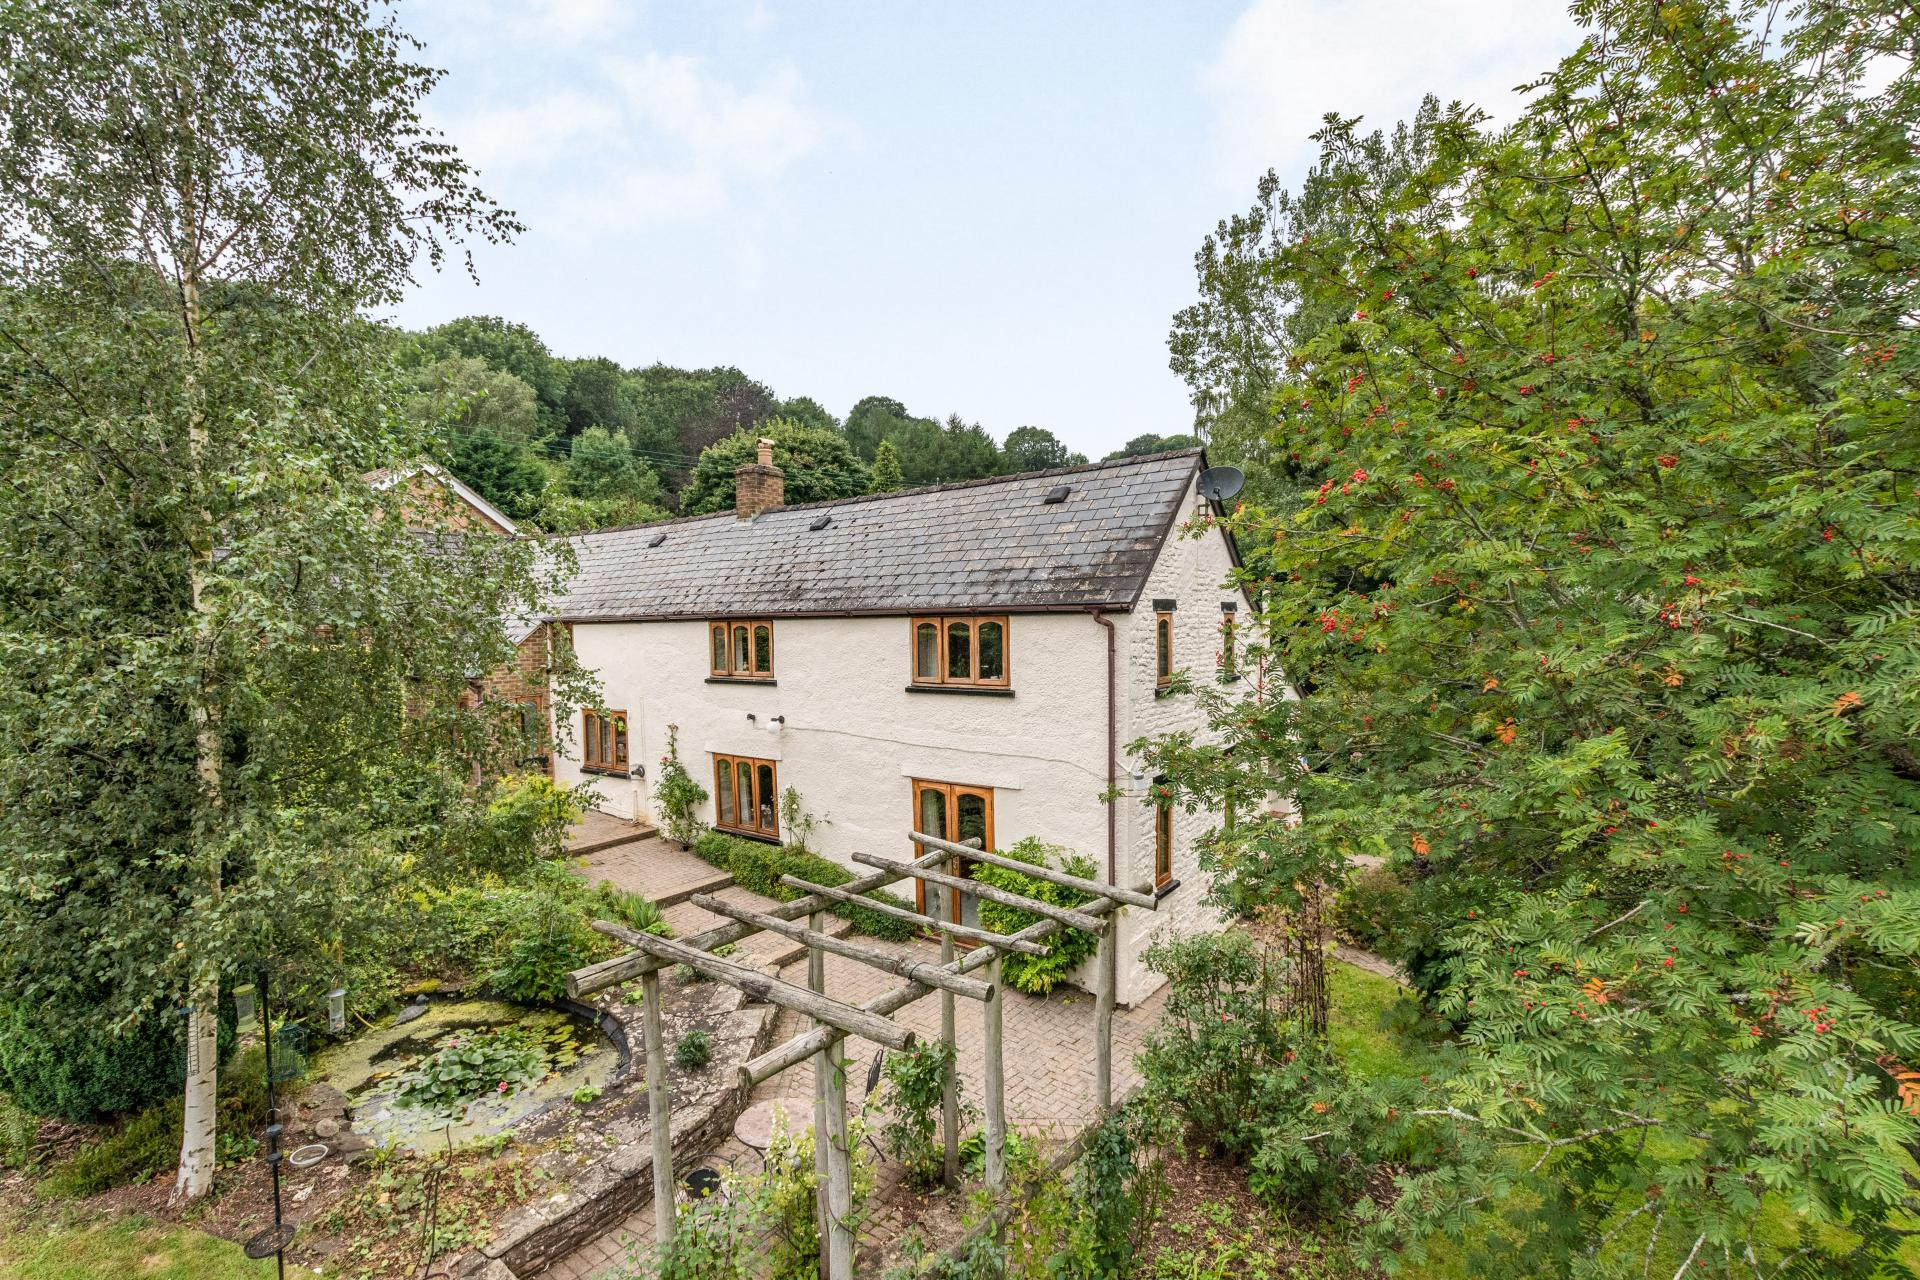 4 Bedroom Detached House for sale in Longhope gloucestershire